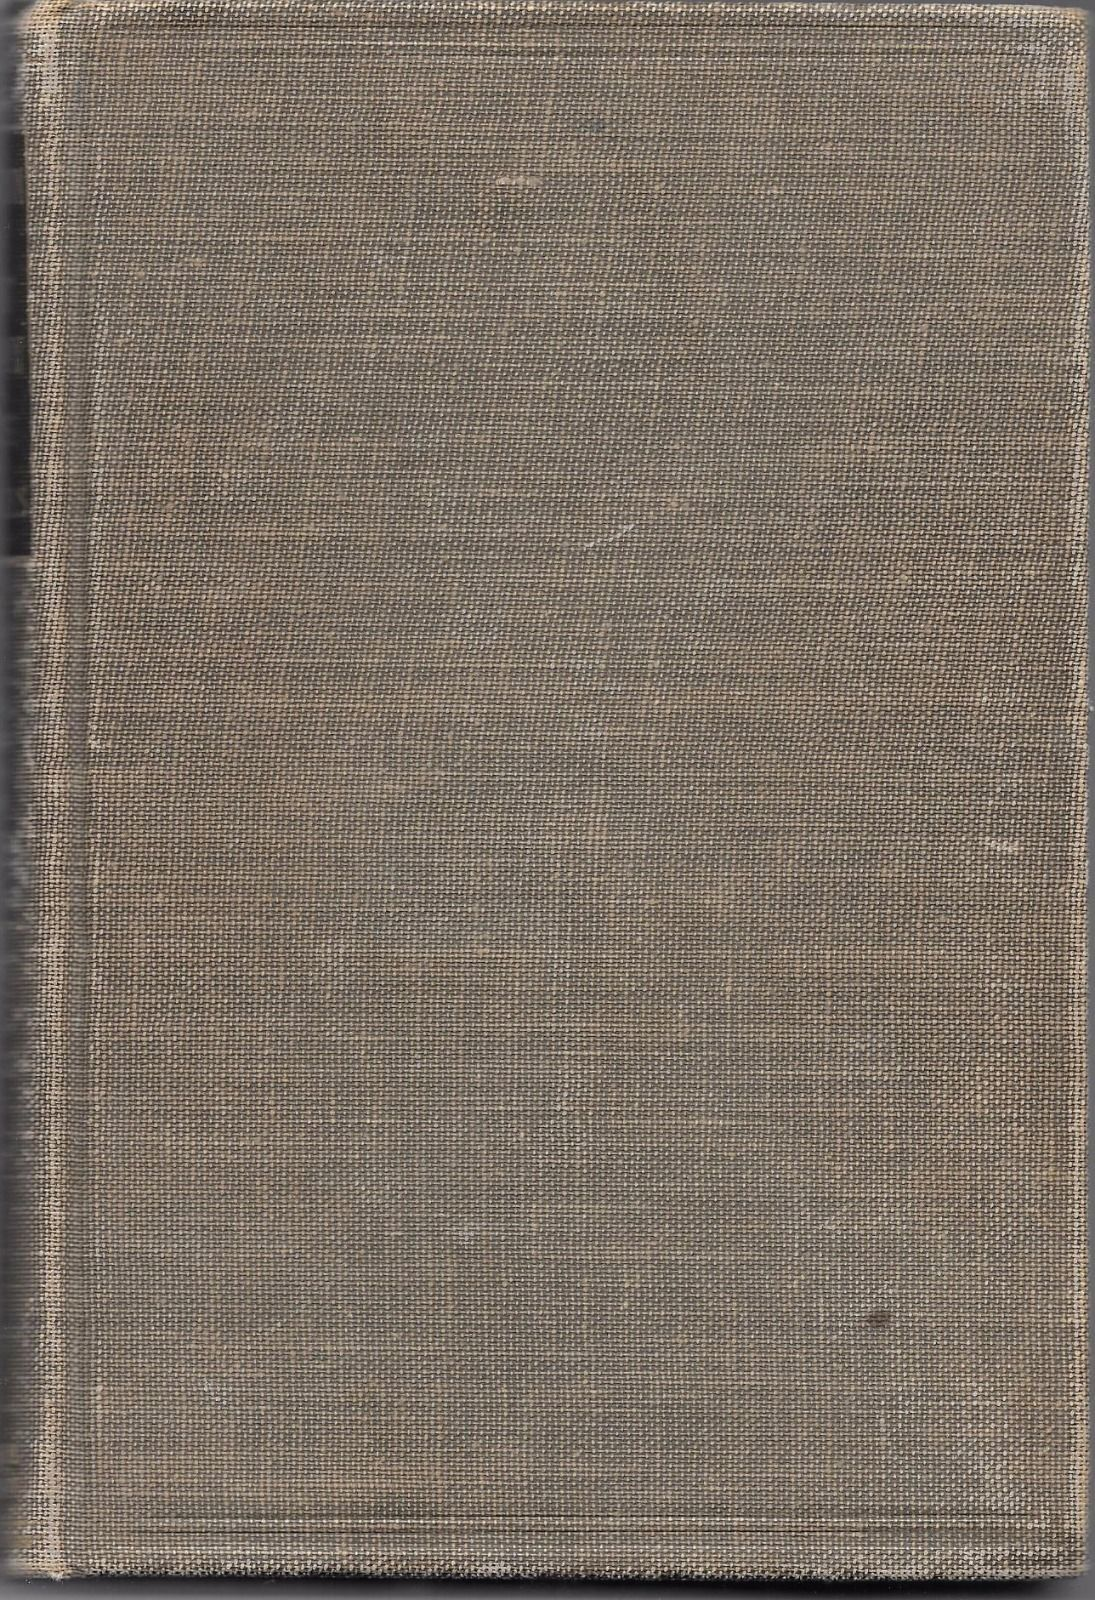 An Introduction To Plant Anatomy (1947) and 16 similar items